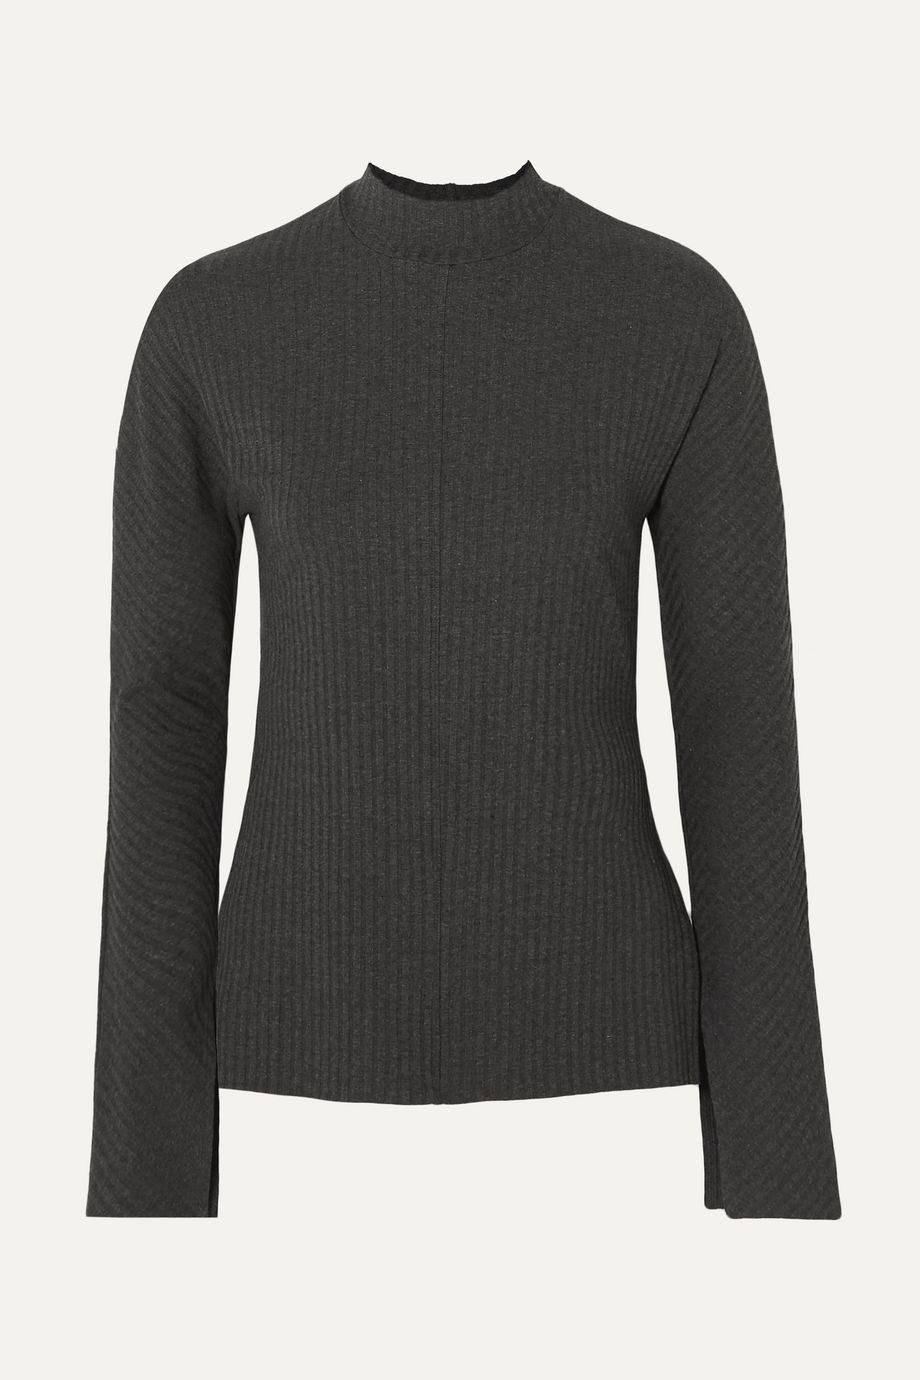 calé Lou ribbed stretch-jersey top